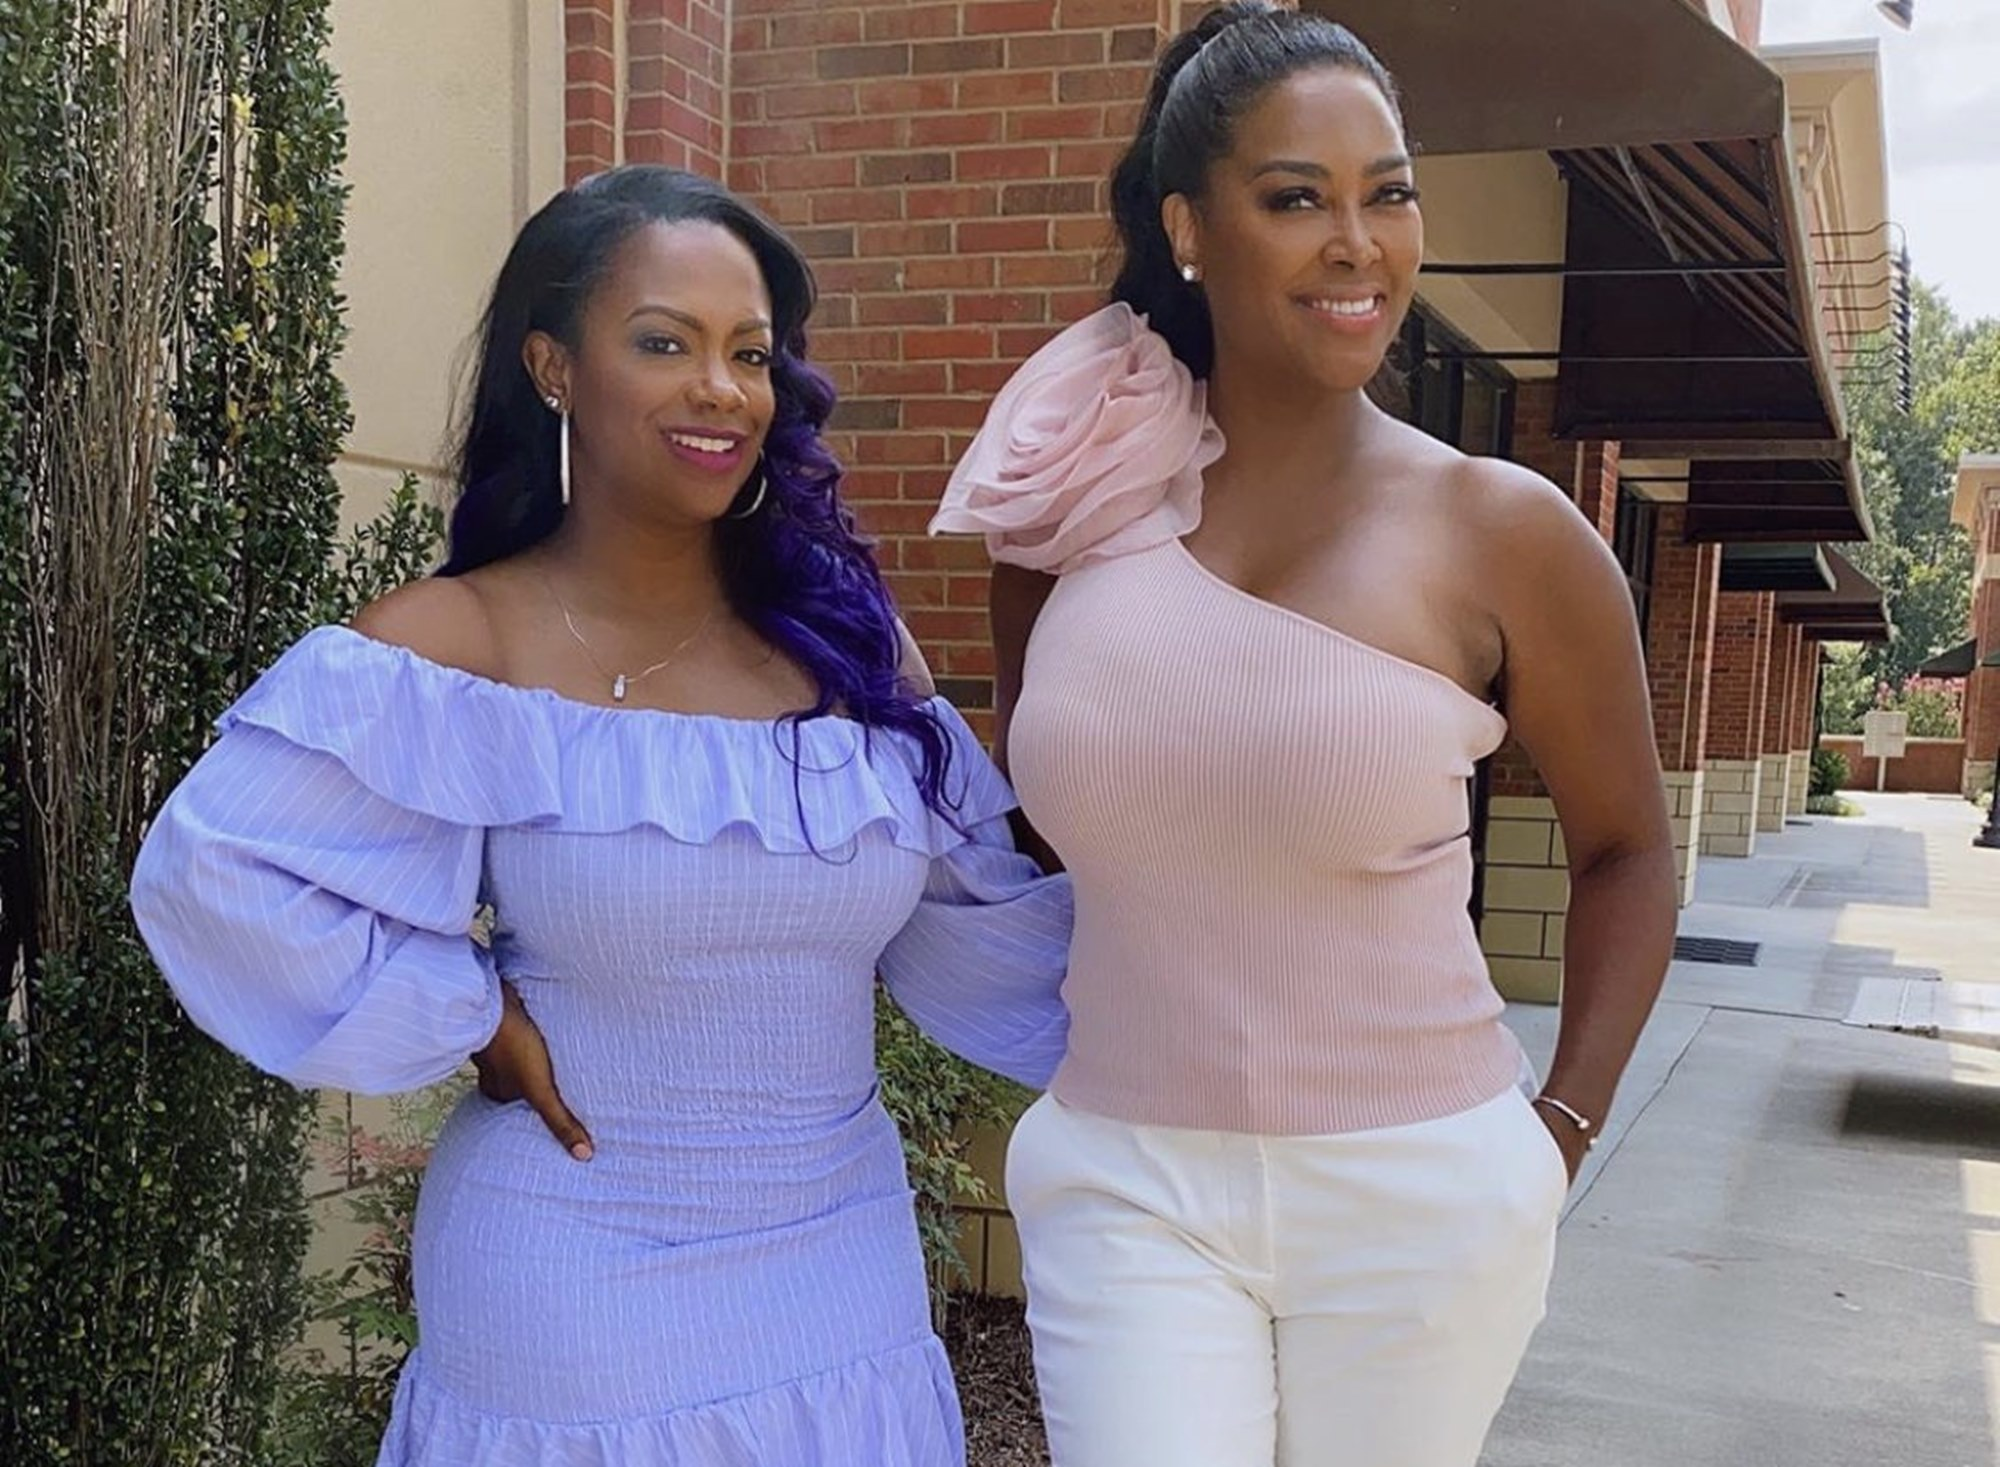 kandi-burruss-and-kenya-moore-have-fierce-bathing-suit-competition-in-these-photos-real-housewives-of-atlanta-fans-have-a-hard-time-picking-the-winner